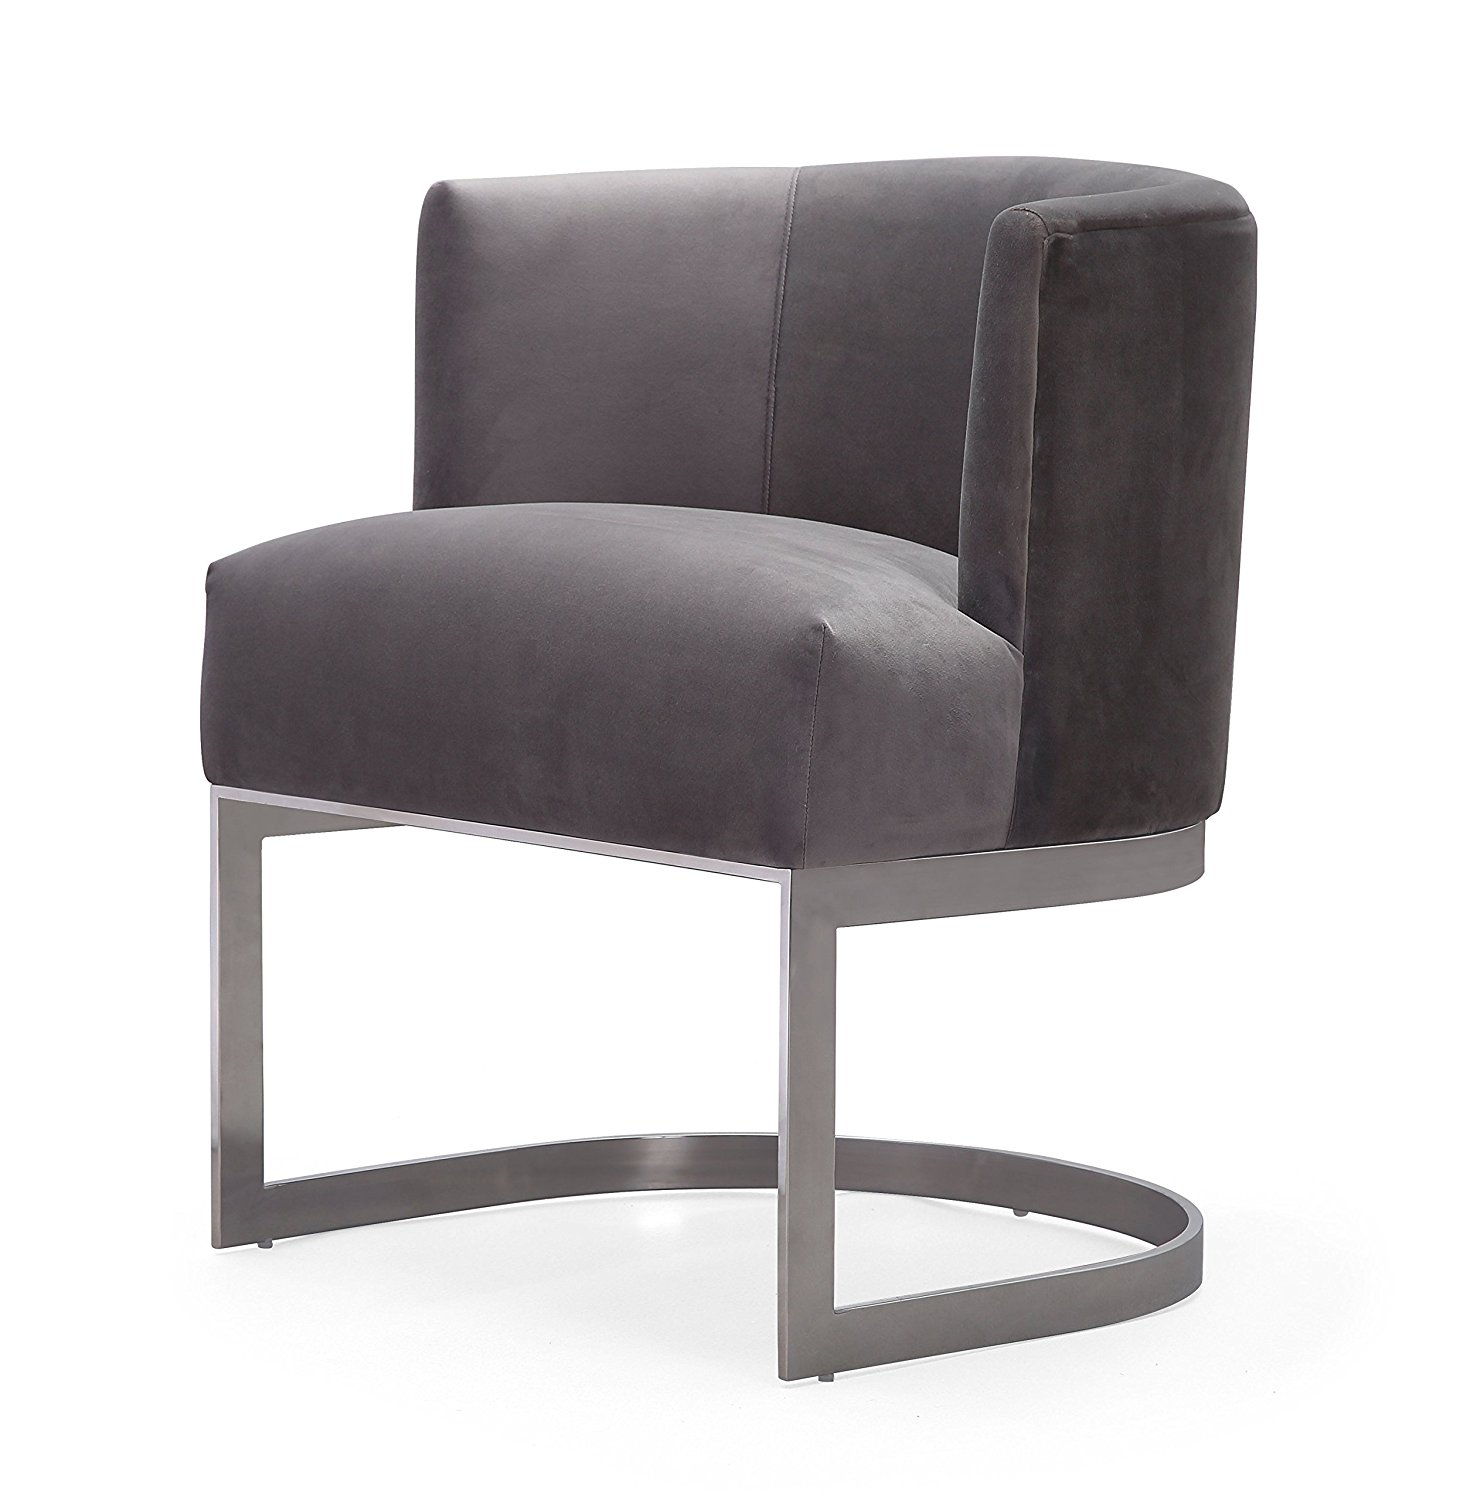 Cheap Accent Chair Covers Find Accent Chair Covers Deals On Line At Alibaba Com